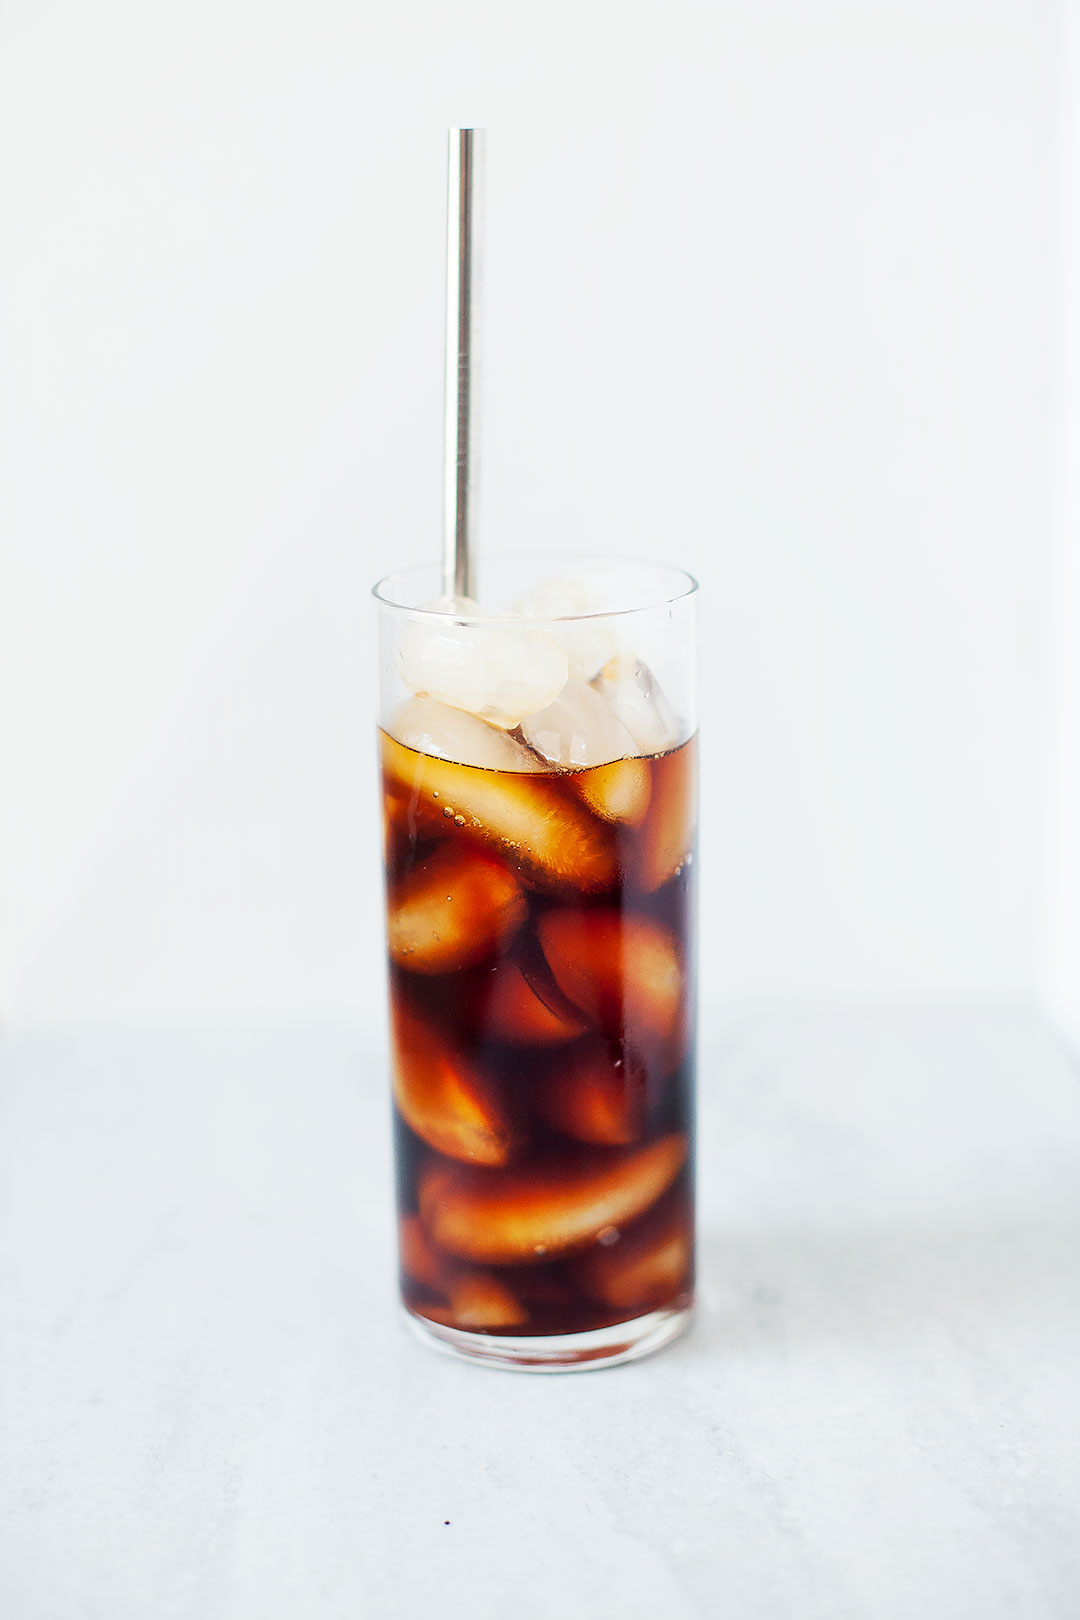 ORGANIC COCONUT COLD BREW COFFEE | A simple cold brew recipe with a hint of coconut. Easily make it at home to save money (and reduce waste!). Never watery, just iced coffee perfection. | LOVELEAF CO. #coldbrew #icedcoffee #coldbrewrecipe #coconut #coffee #iced #summer #drink #organic